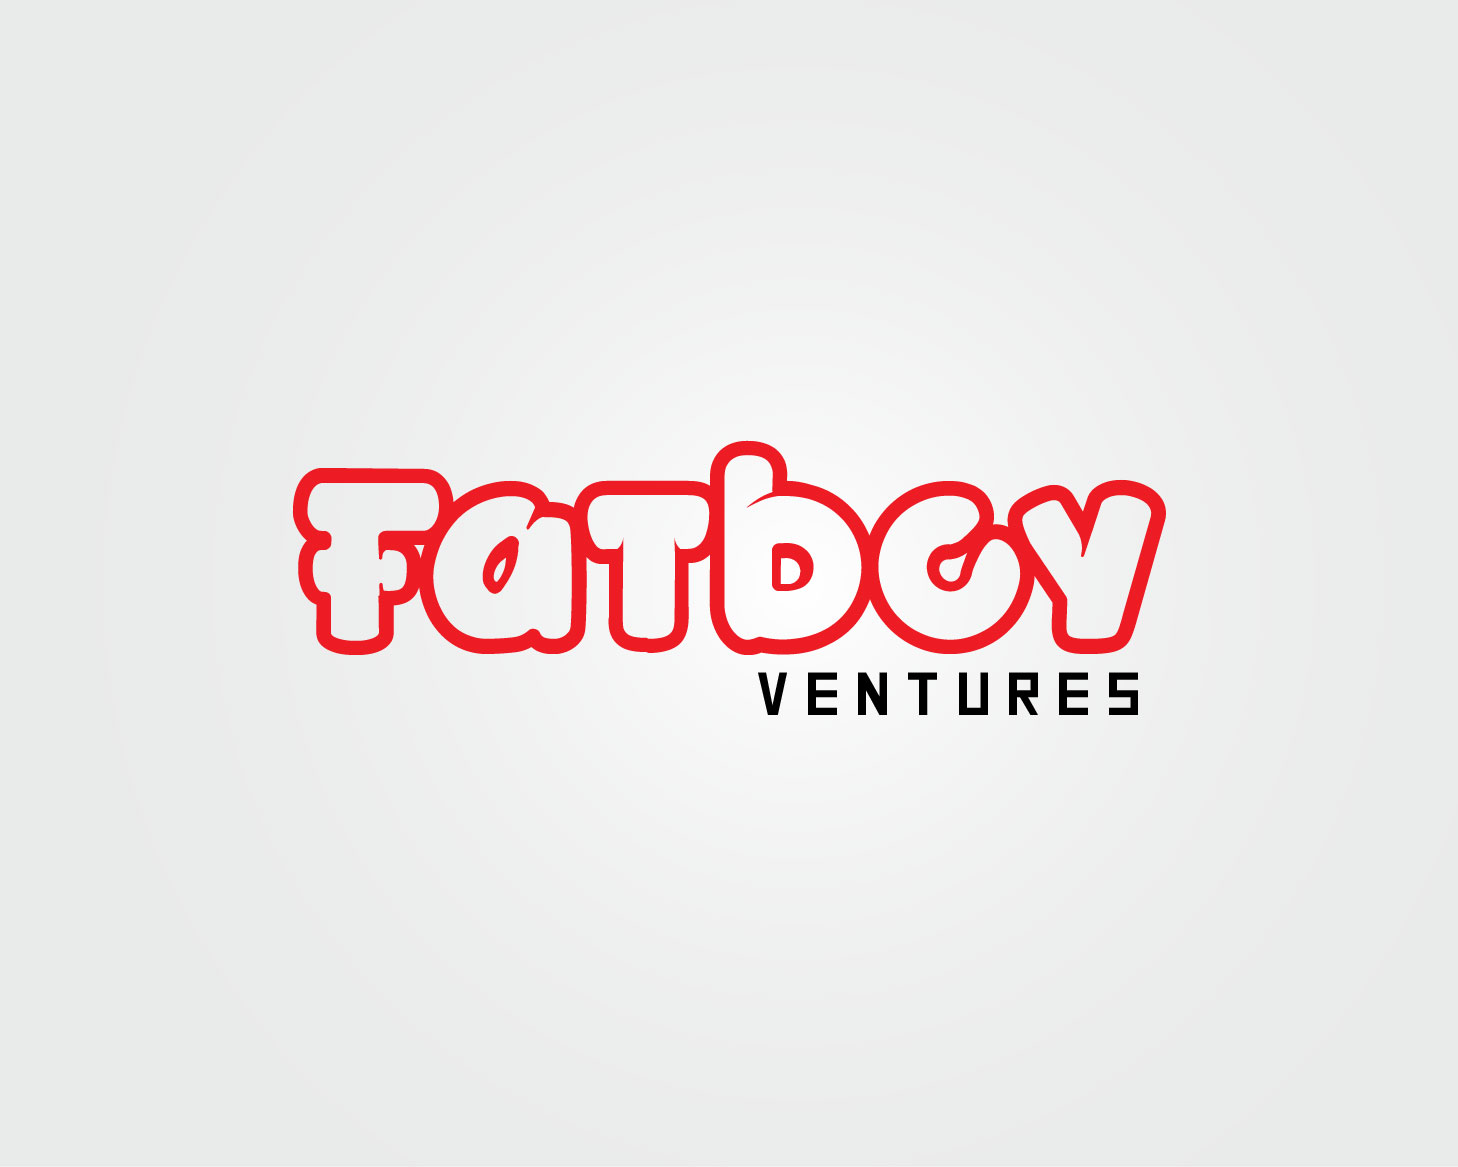 Logo Design by Rowel Samson - Entry No. 121 in the Logo Design Contest Fun Logo Design for Fat Boy Ventures.